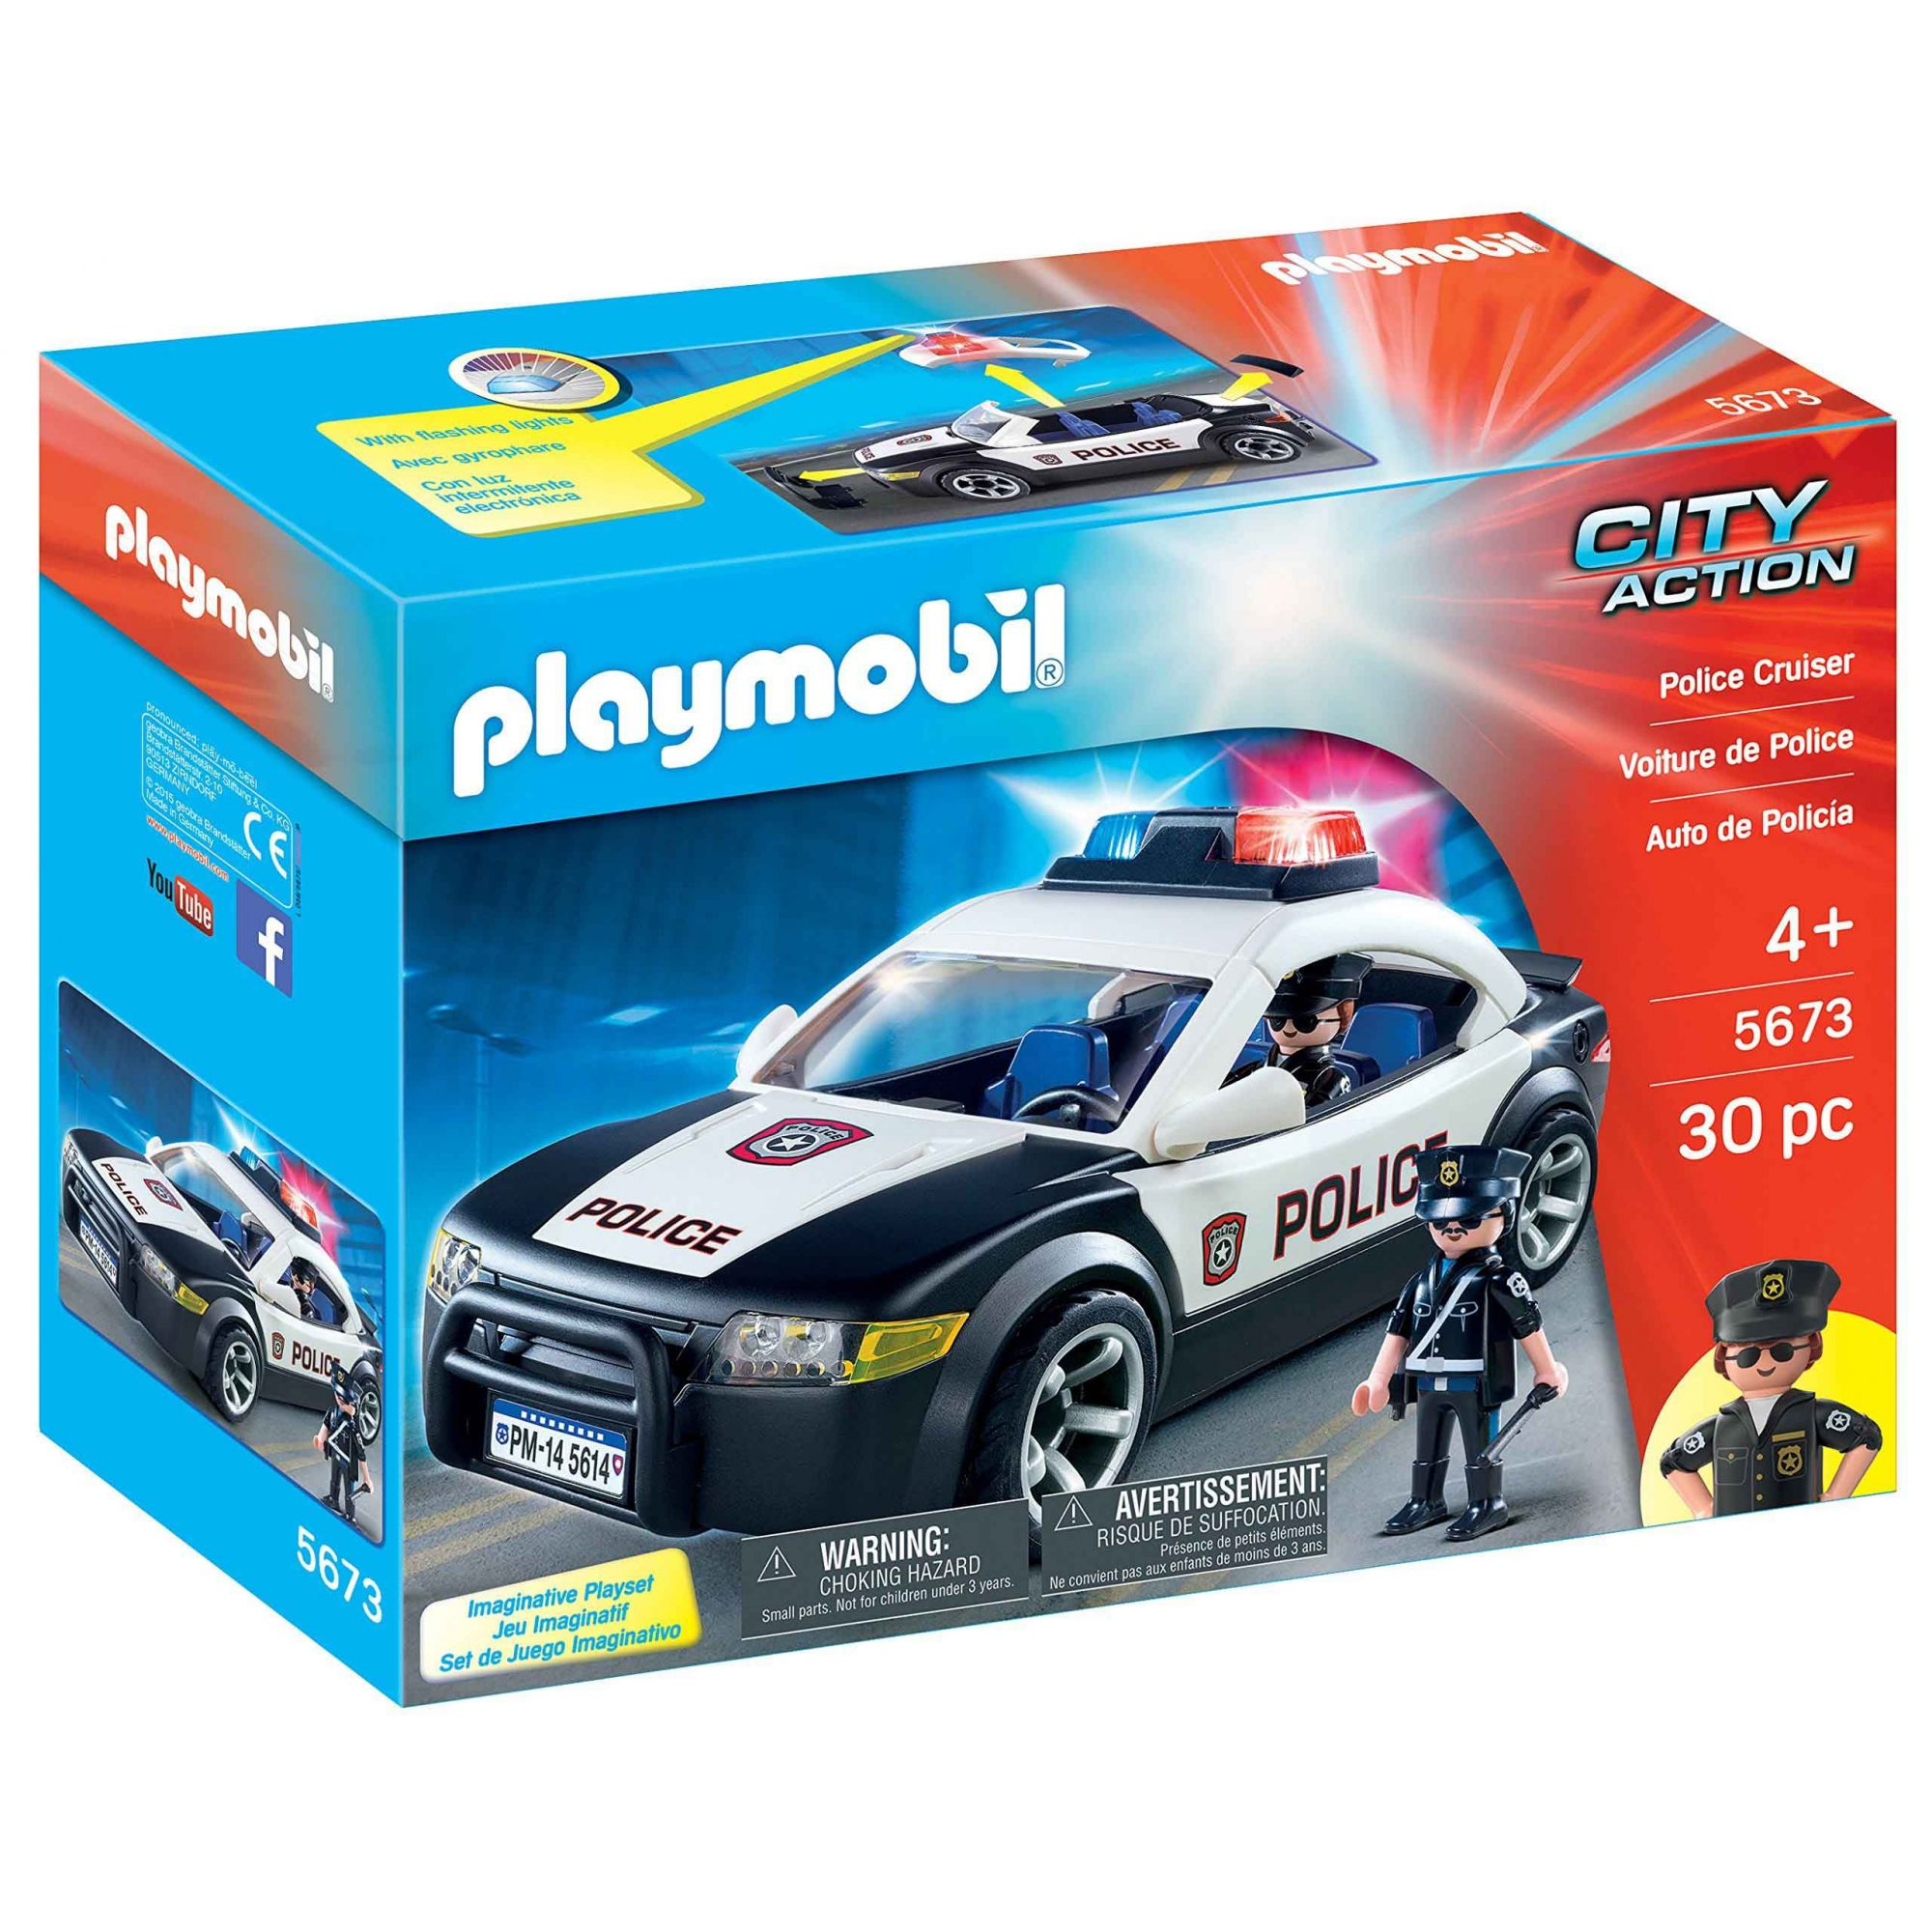 PLAYMOBIL CITY ACTION CARRO DE POLICIA SUNNY 5673